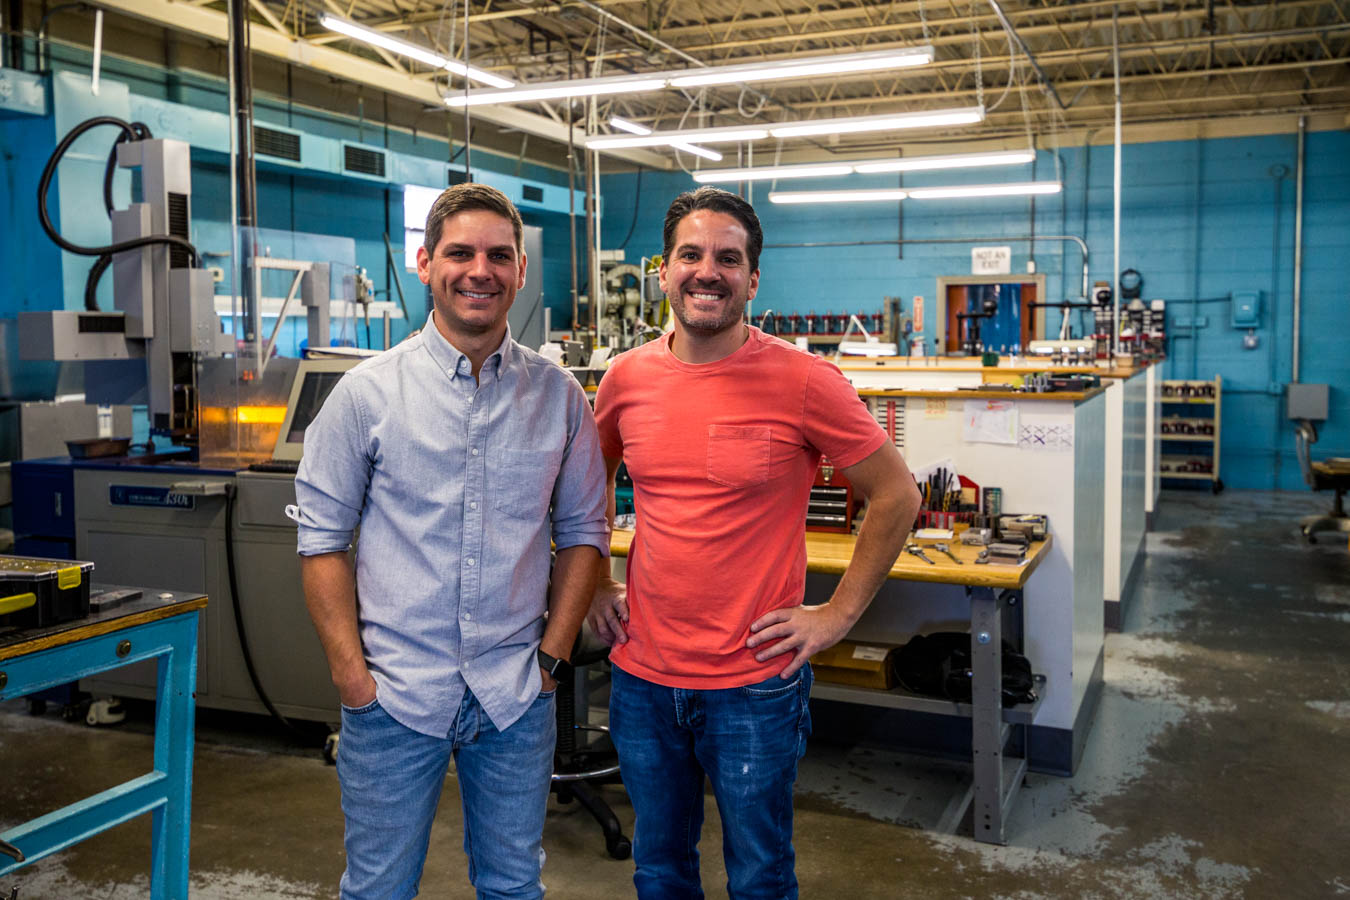 Scott and Dan Wanstrath, owners / Image: Catherine Viox{ }// Published: 10.8.19